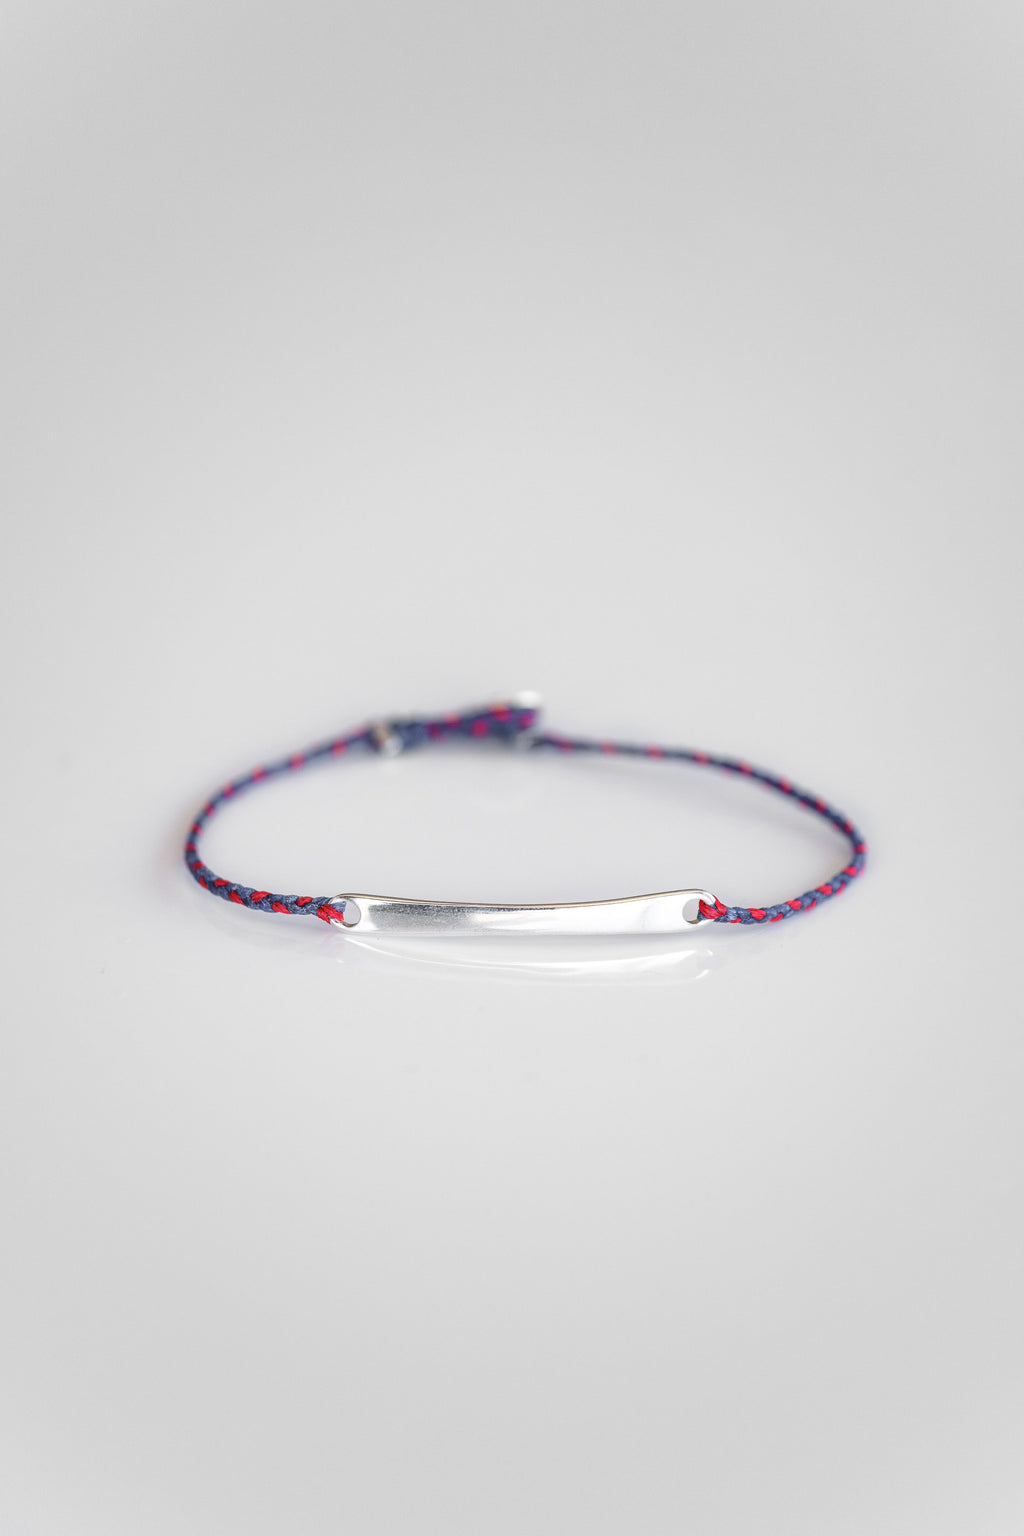 SILVER ID BRACELET IN ROYAL + SCARLET